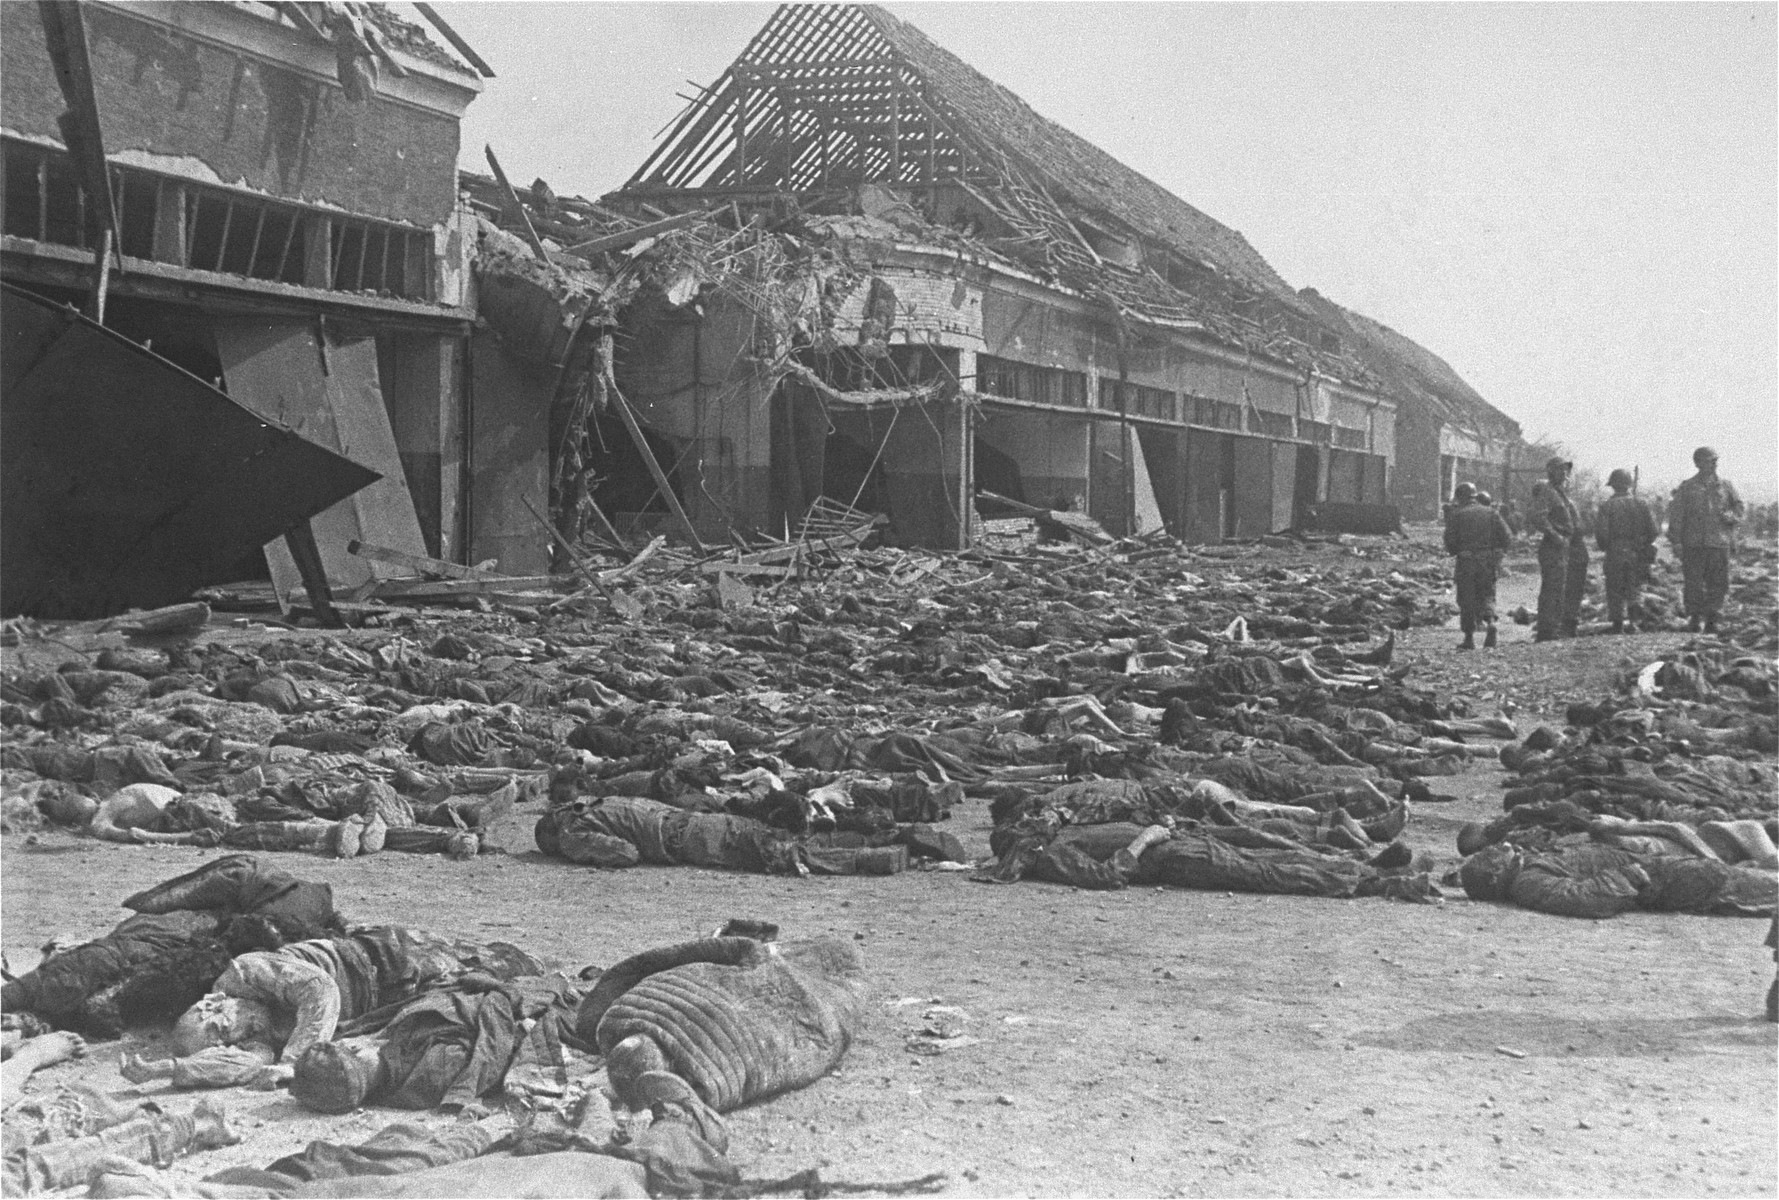 American soldiers stand among hundreds of corpses laid out in rows outside the central barracks (Boelke Kaserne) in the Nordhausen concentration camp.